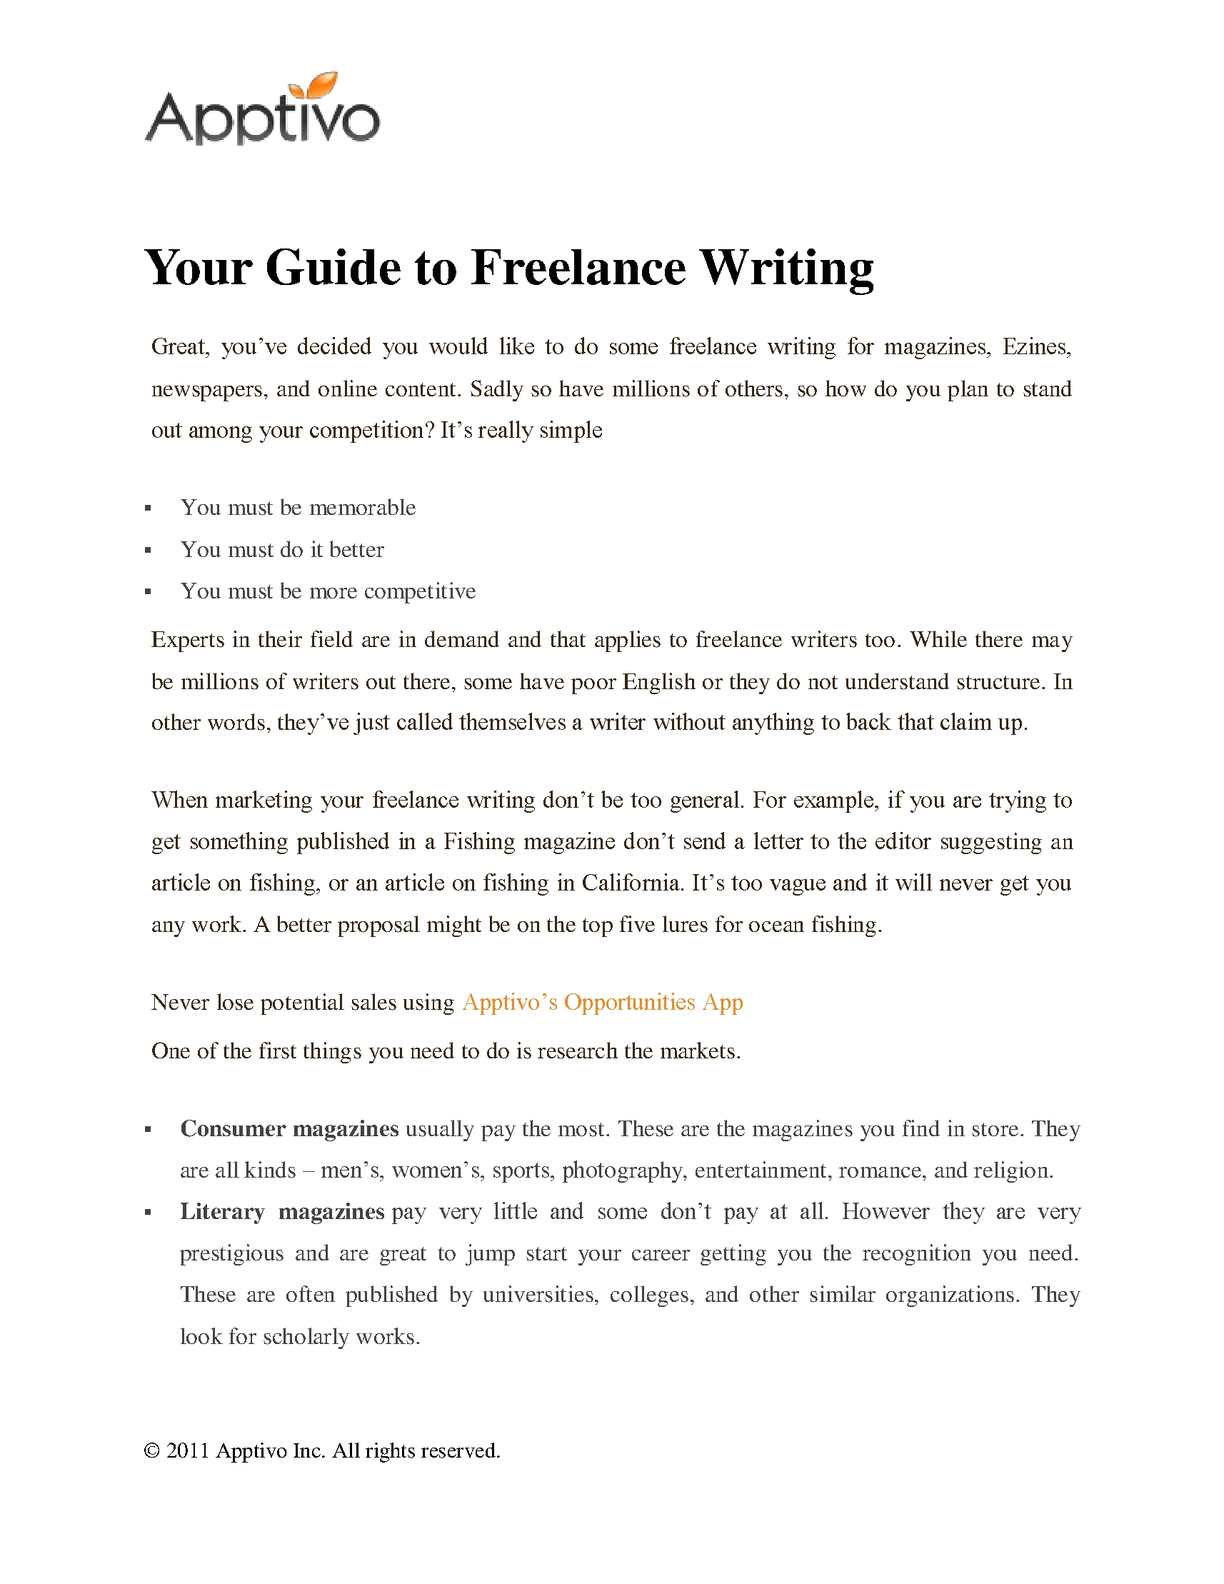 Calaméo - Your Guide to Freelance Writing